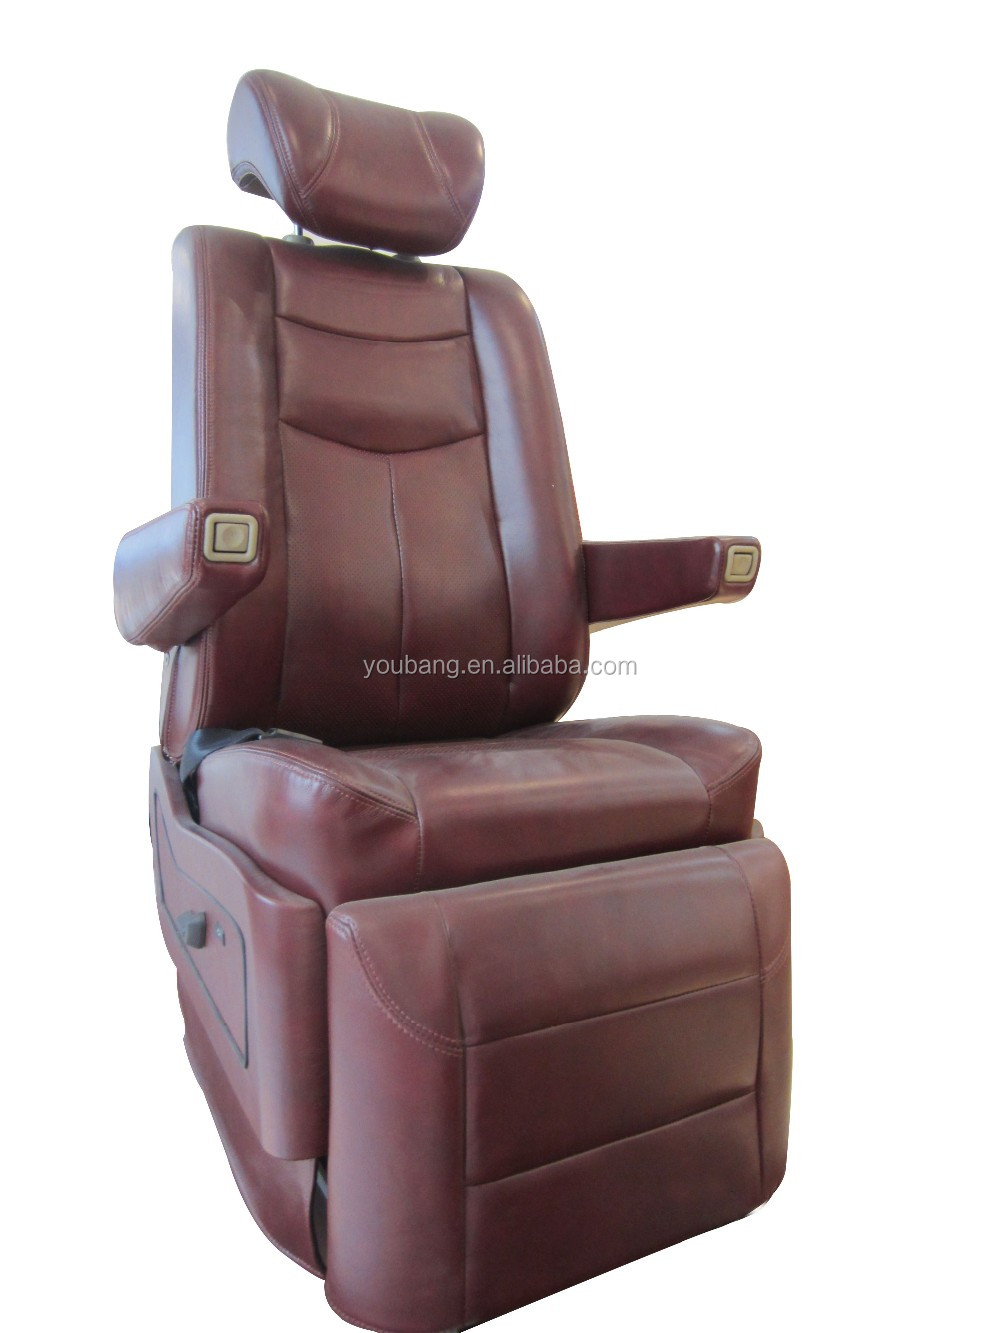 Overseas service center luxury auto seats with new style